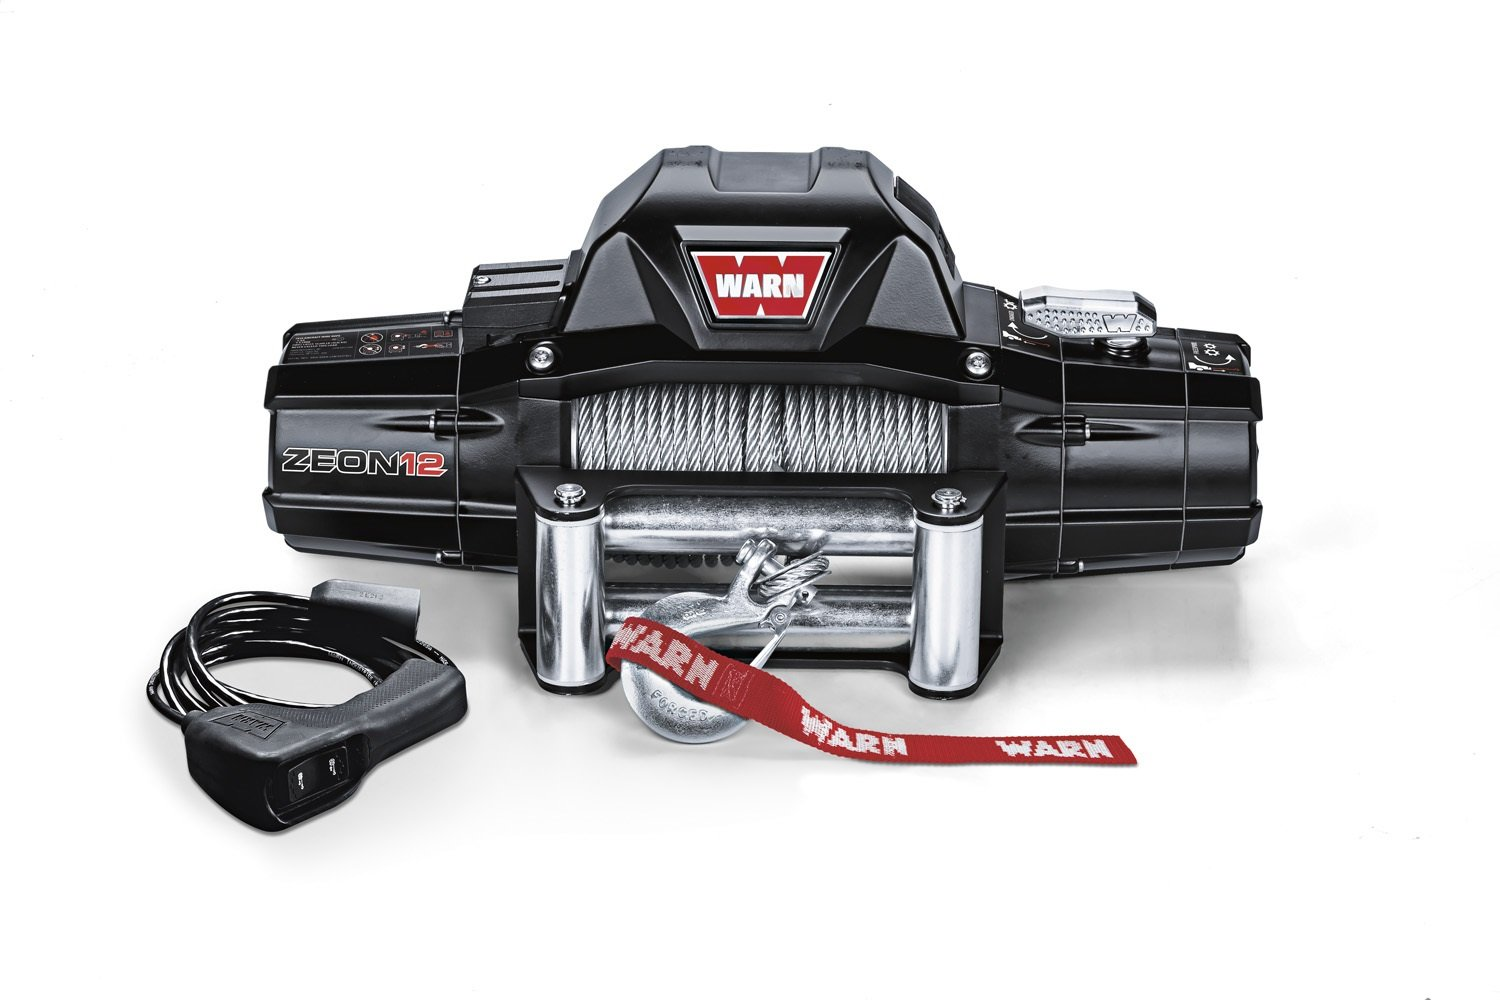 Amazon.com: Warn 89120 ZEON 12 Winch with Wire Rope - 12000 lb ...